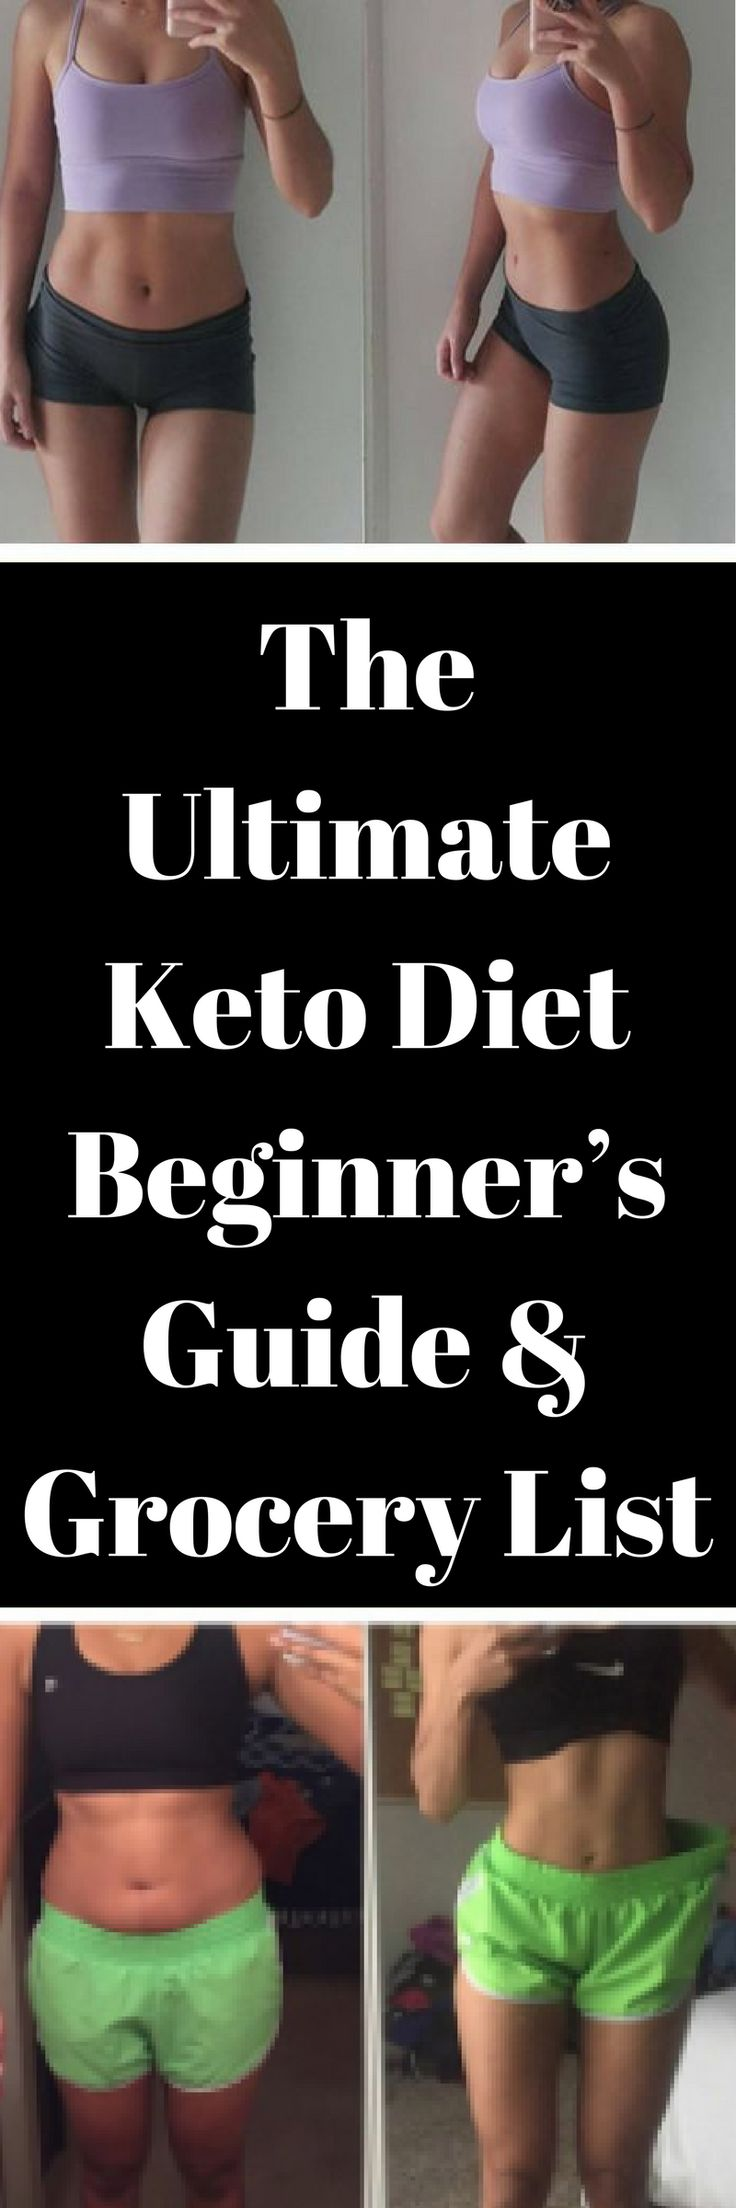 My ketogenic journey: how I lost the baby weight